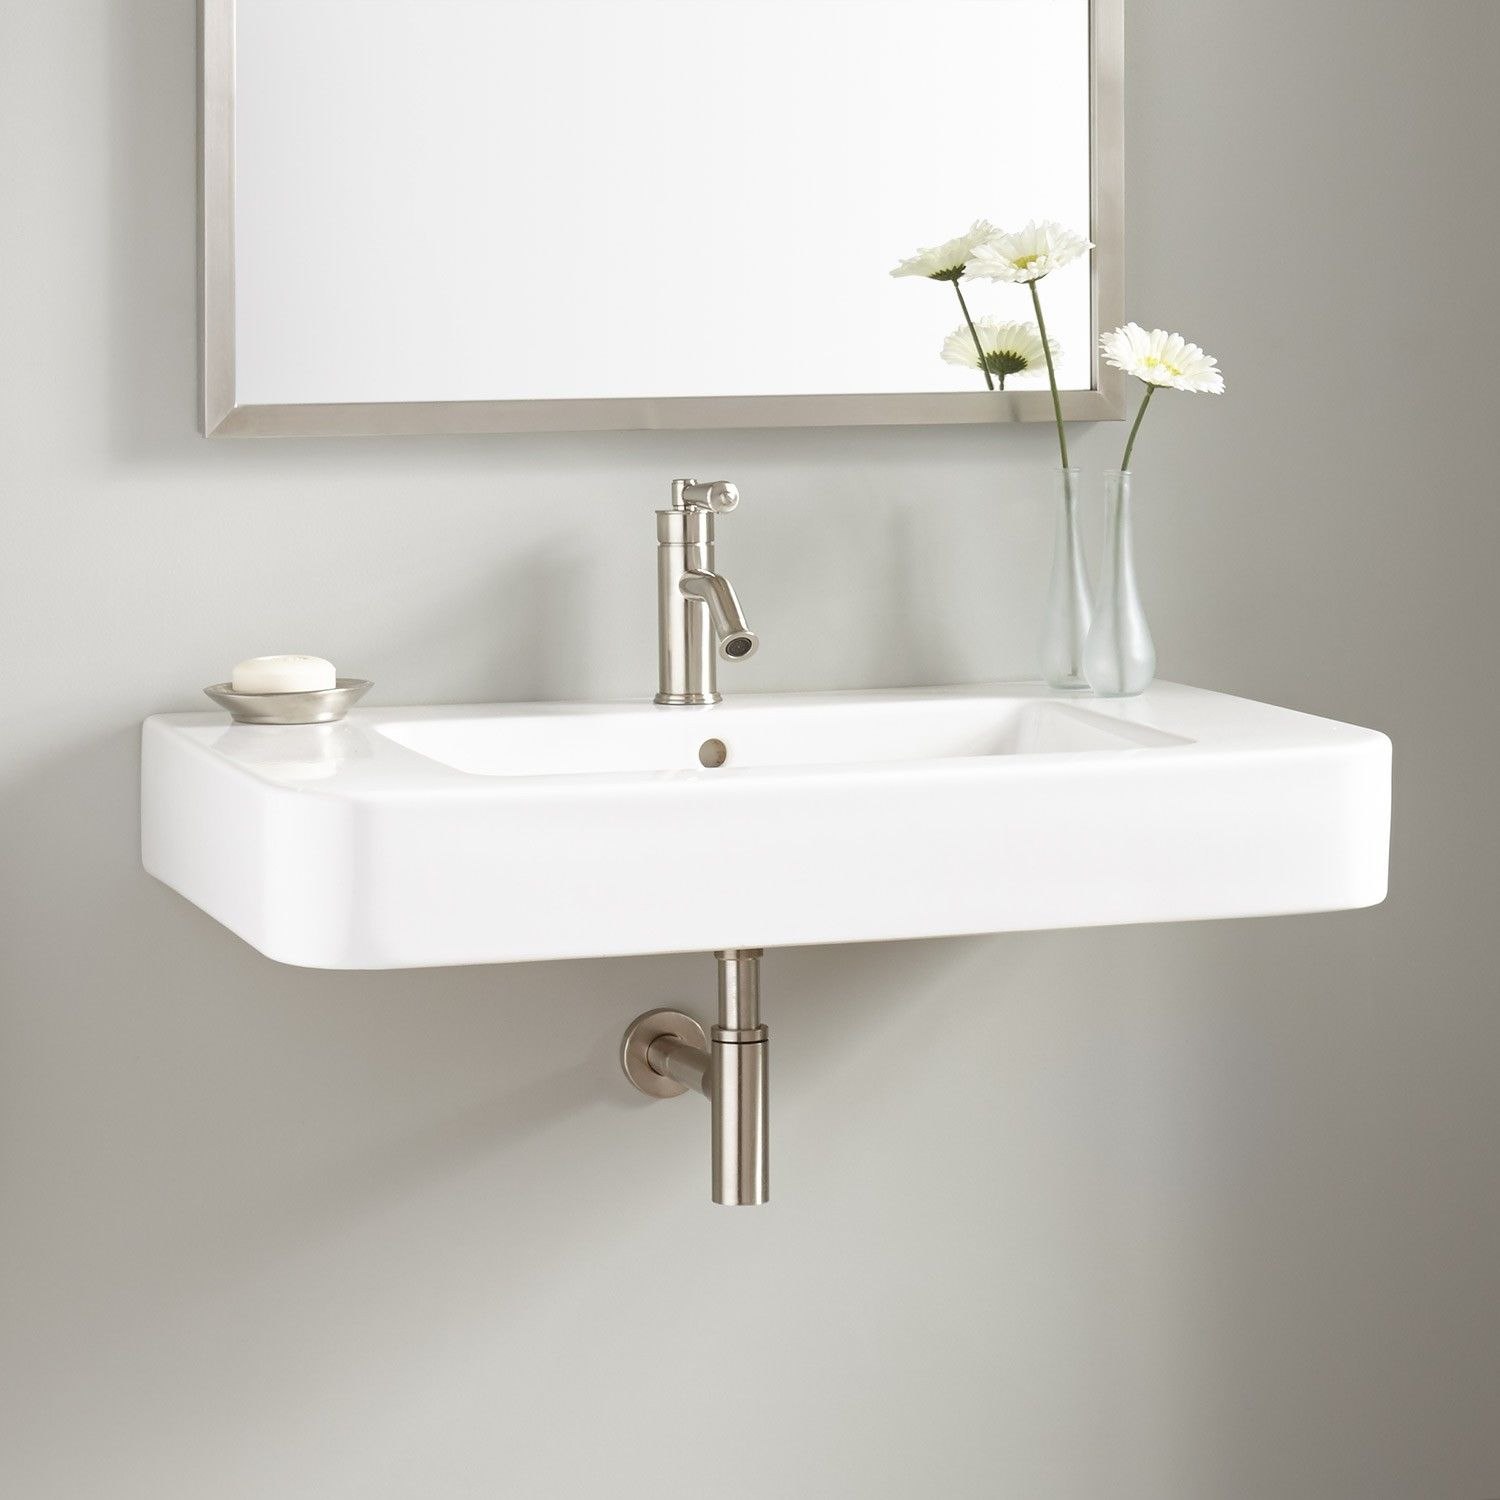 Superb American Standard Undermount Bathroom Sinks Inspiration - American standard undermount bathroom sinks